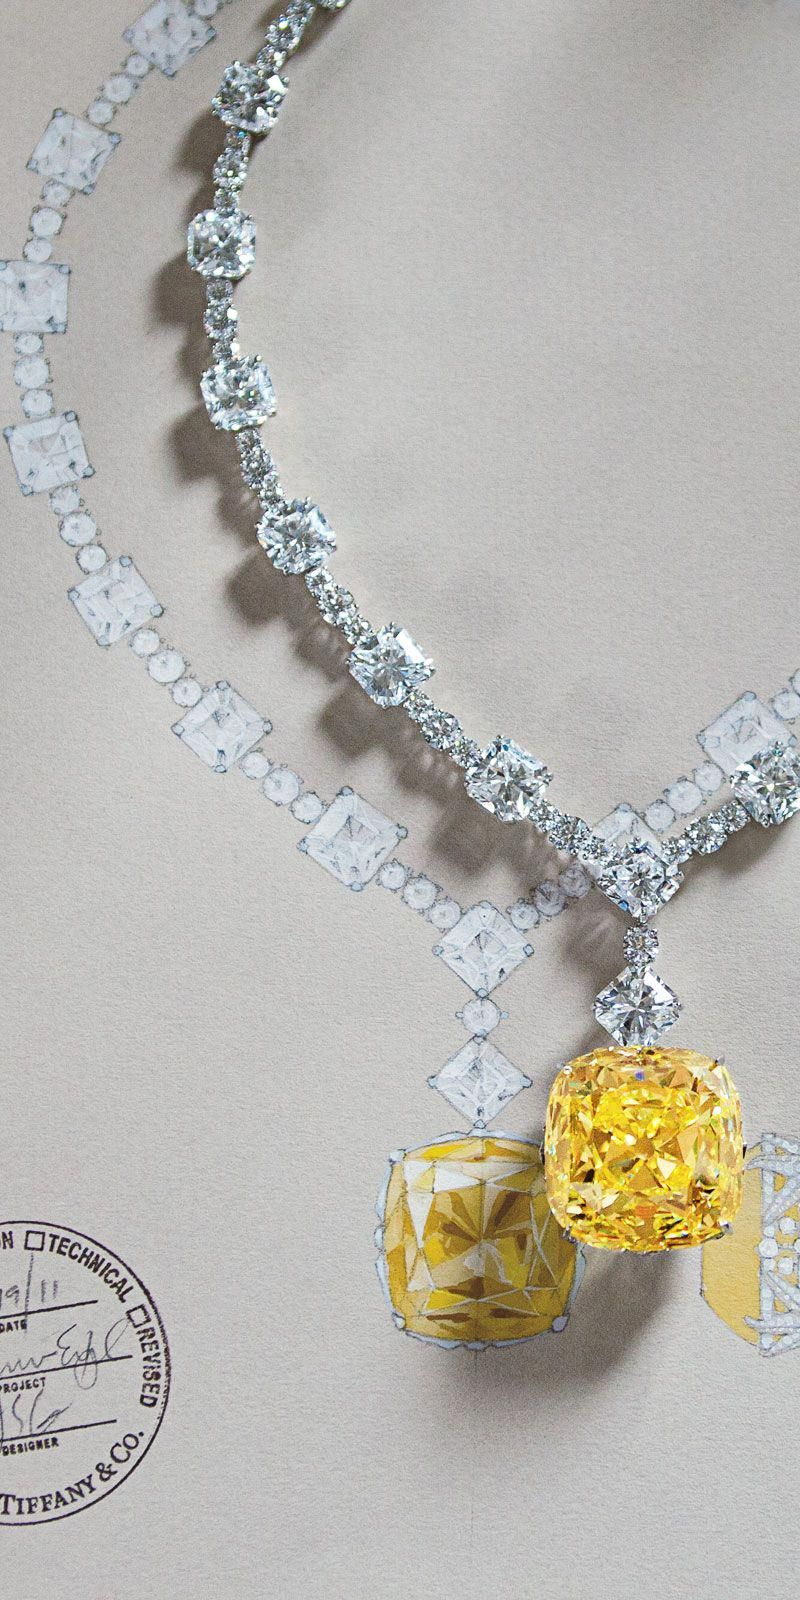 76f2a326e For Tiffany's 175th anniversary in 2012, the priceless Tiffany Diamond was  reset in a magnificent necklace of white diamonds.The famous yellow Tiffany  ...